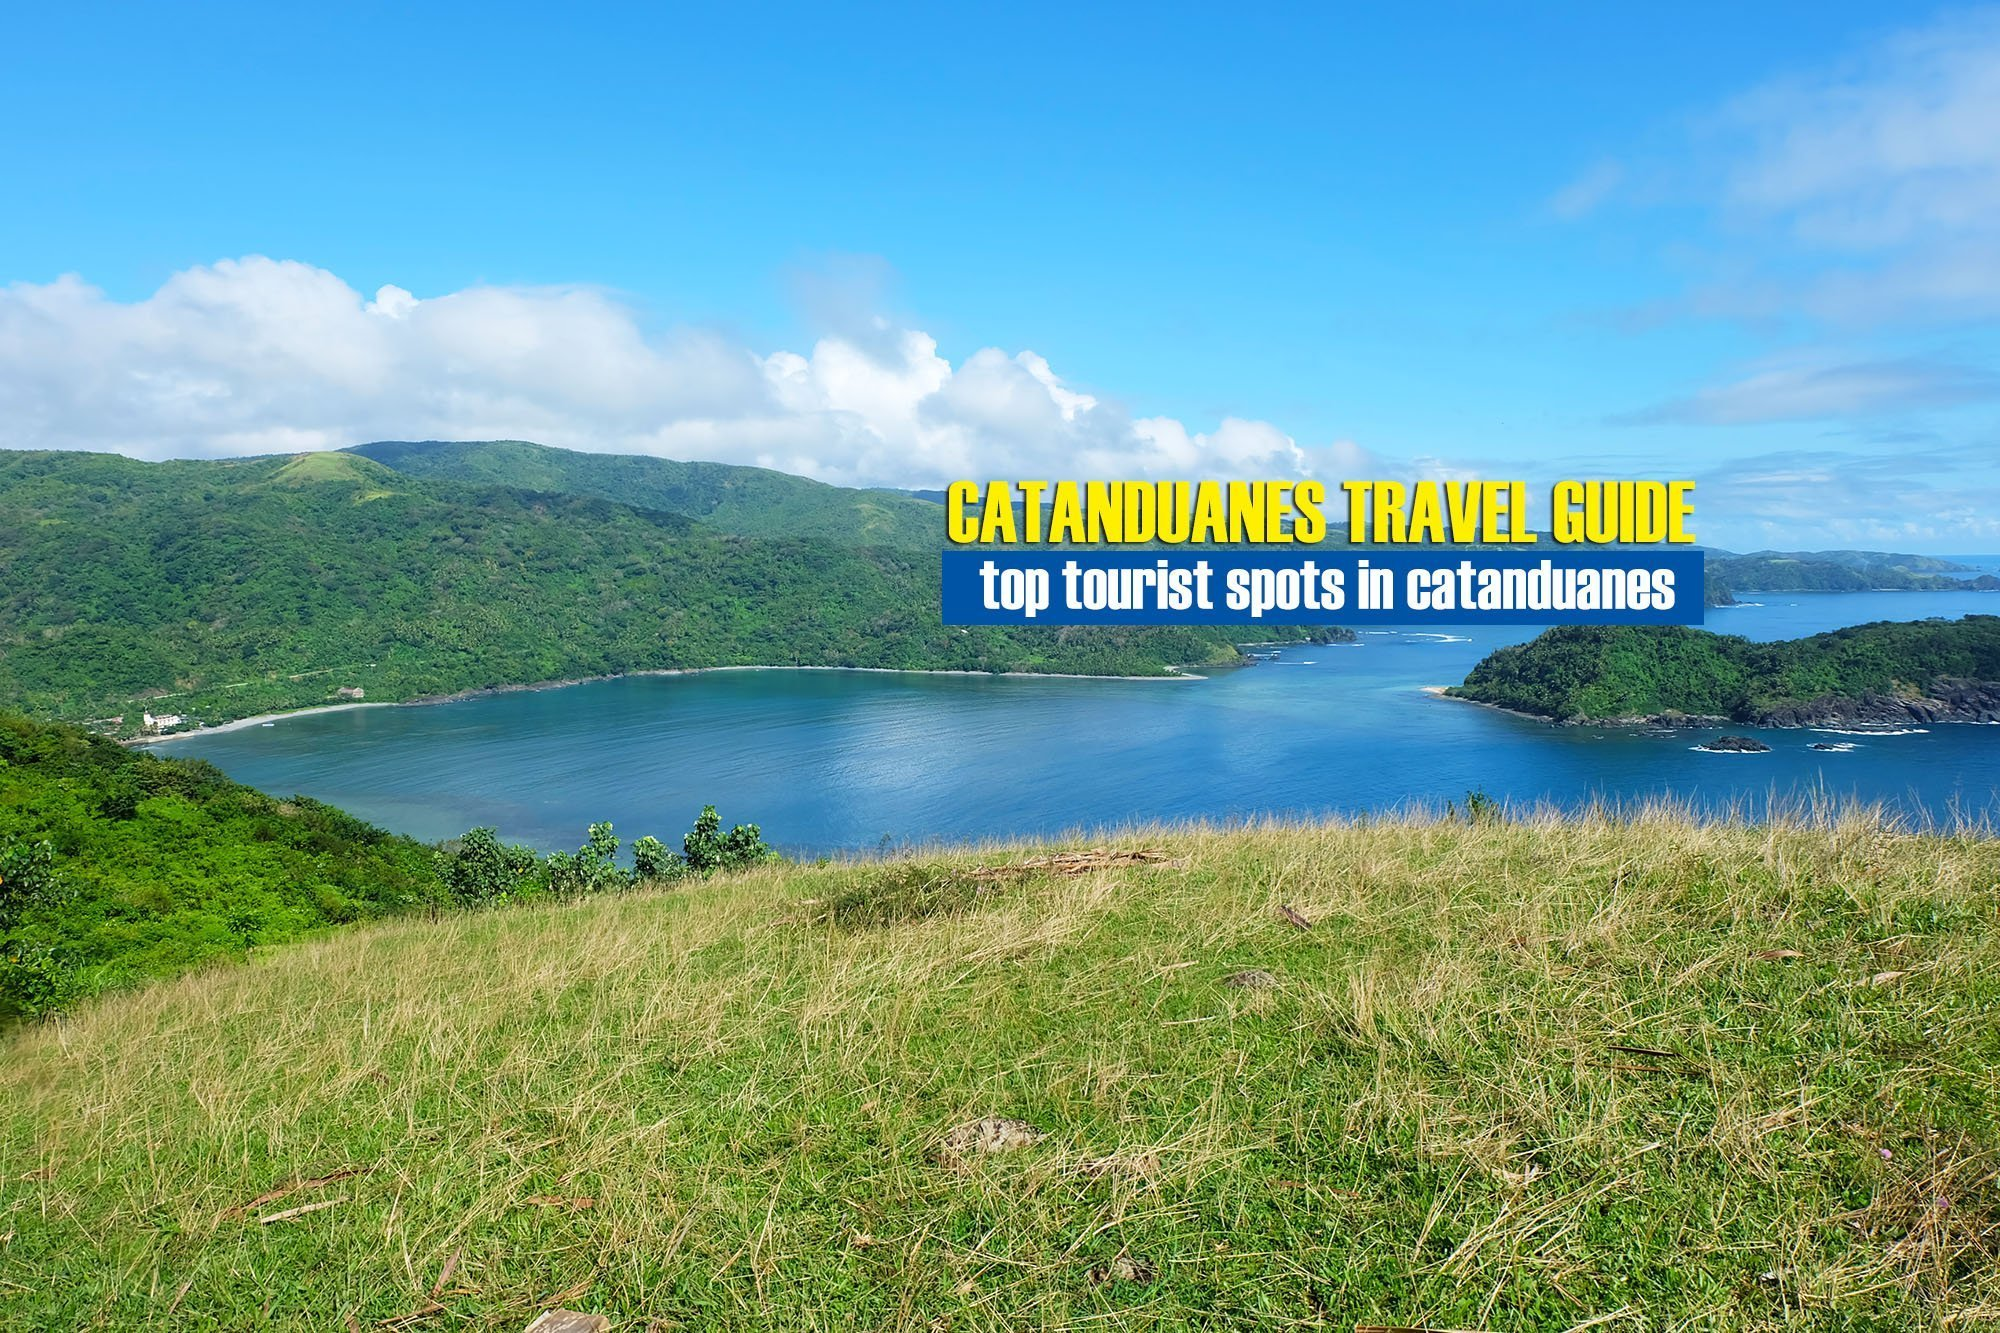 17 Tourist Attractions in Catanduanes [And How To Get There]